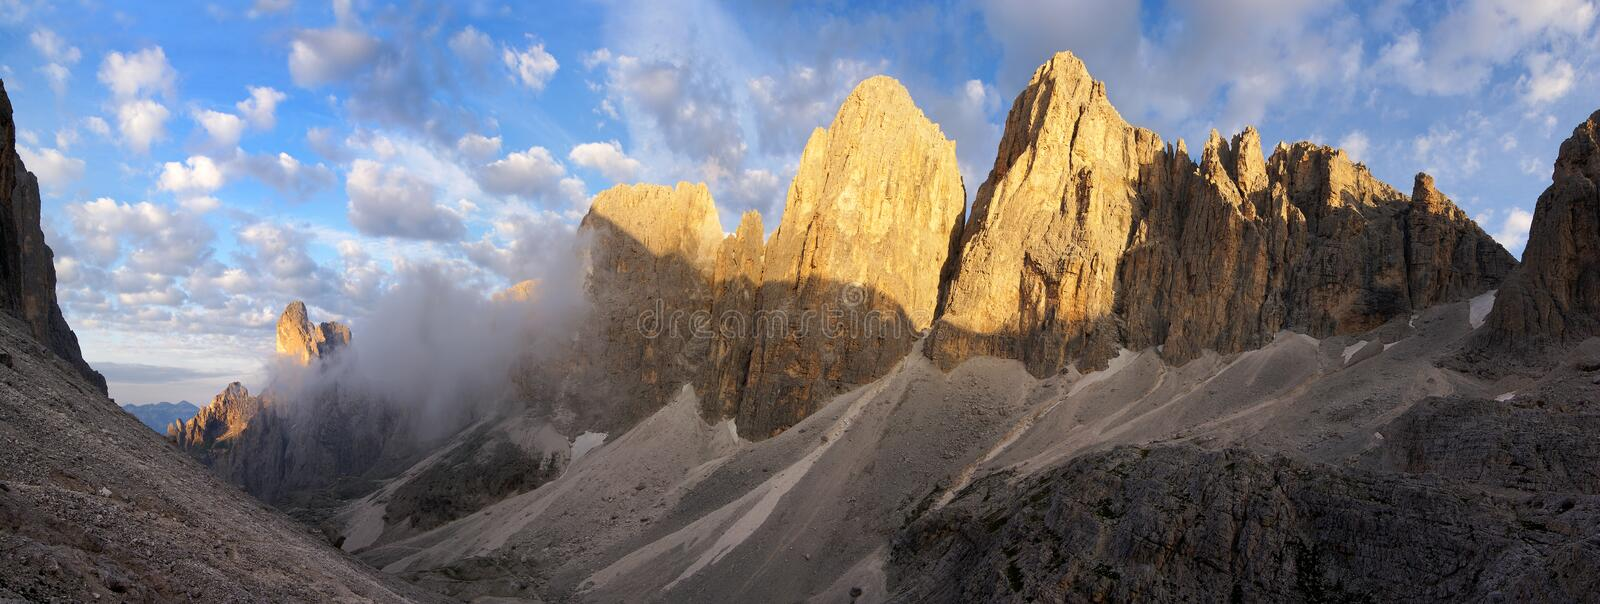 Download Pale di san martino stock photo. Image of martino, italy - 22306004